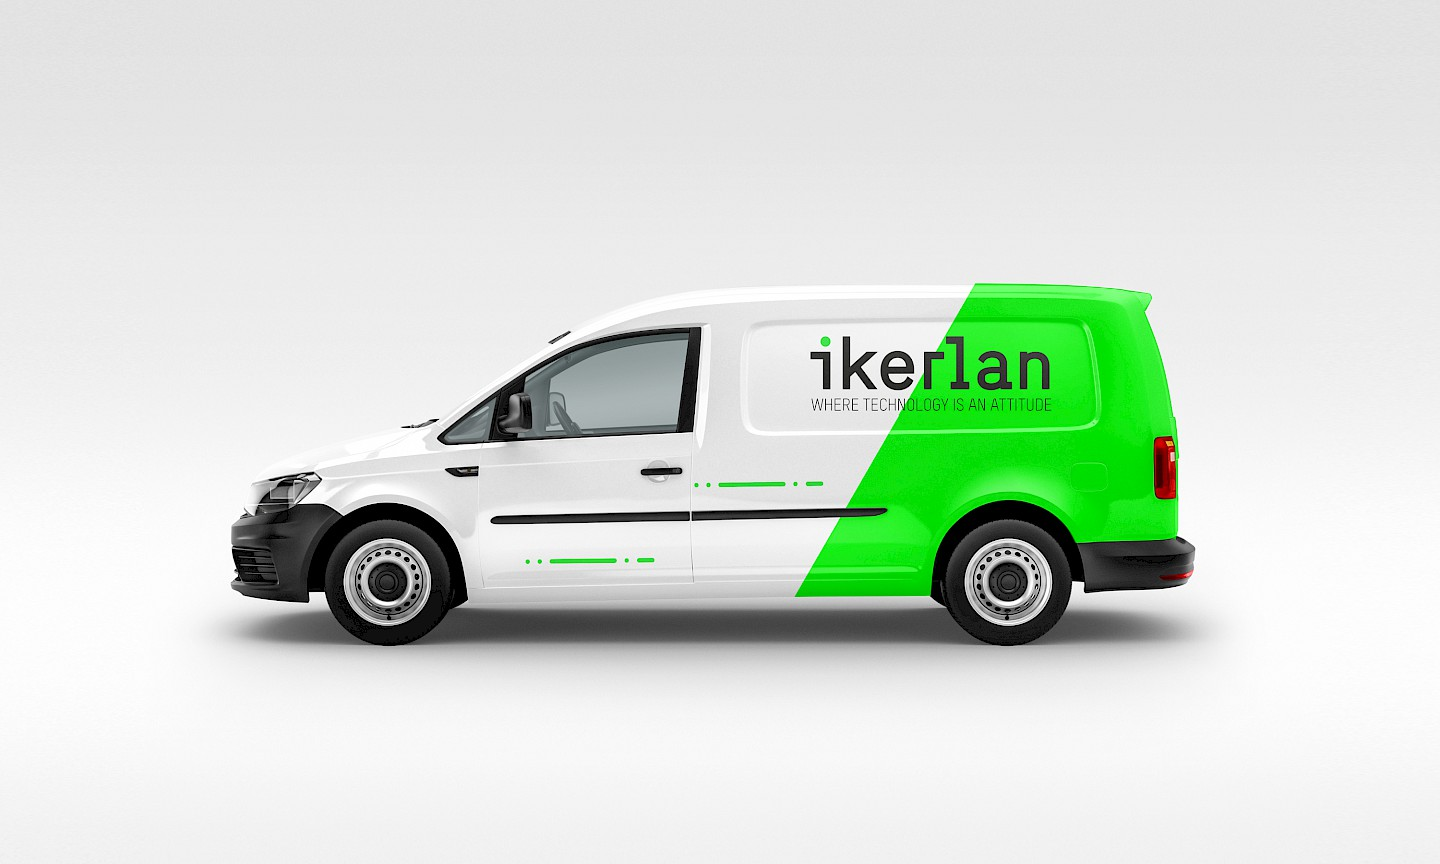 move design branding technology ikerlan environment_5